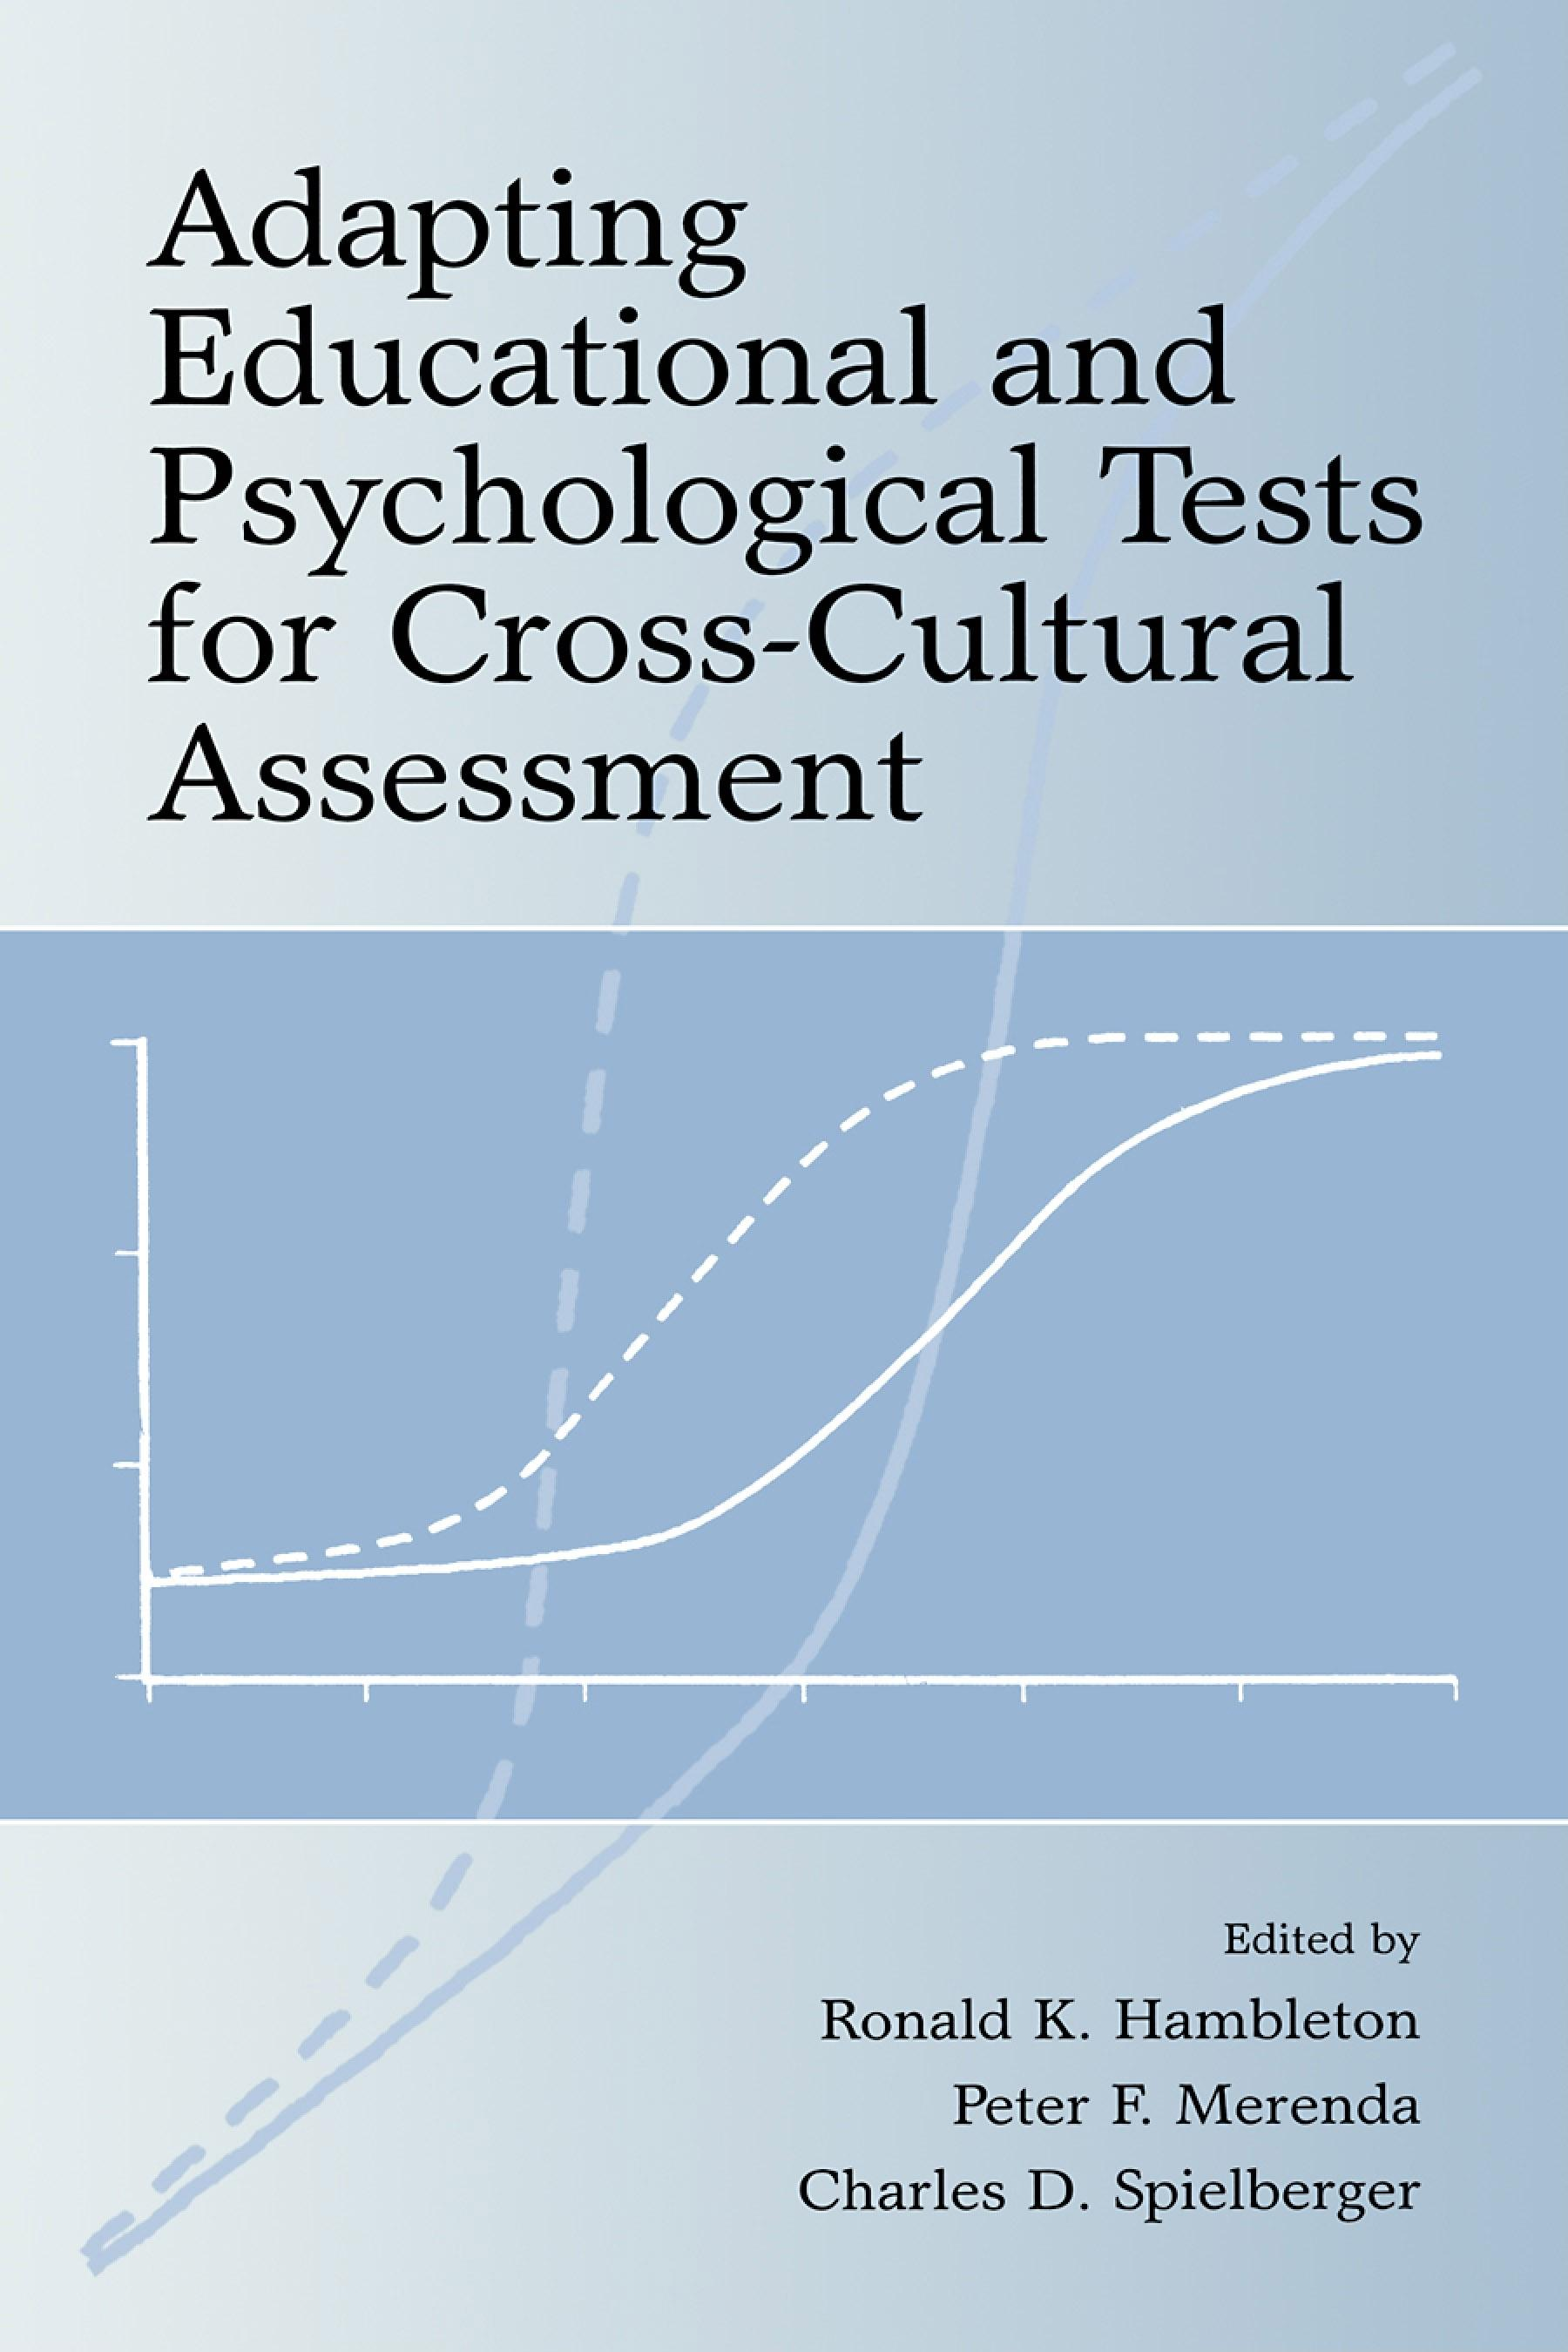 Adapting Educational and Psychological Tests for Cross-Cultural Assessment EB9781410611758